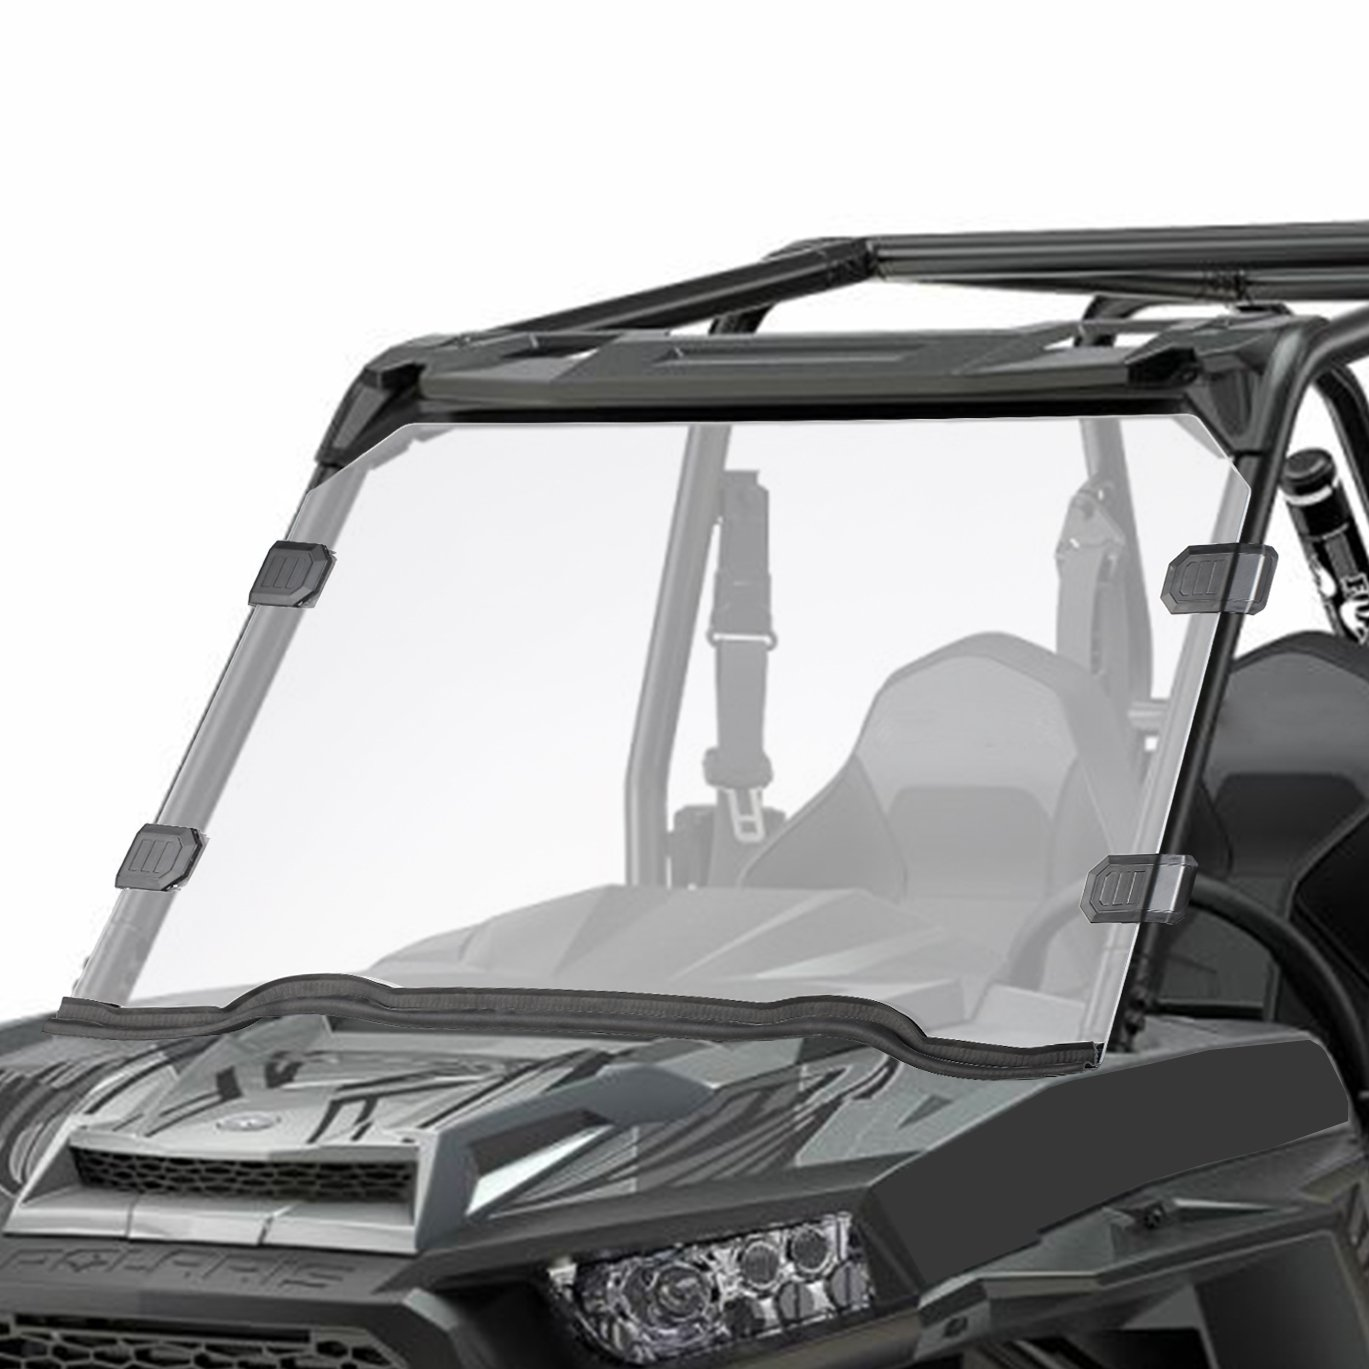 Orion Motor Tech UTV Full Windshield, Compatible with Polaris Razor, 15-18 RZR 900, 15-18 RZR 4 900, 15-18 RZR S 900, 15-18 RZR XC 900, 14-18 RZR 1000, 16-18 RZR S 1000, 16-18 RZR XP Turbo, 14-18 RZR by OrionMotorTech